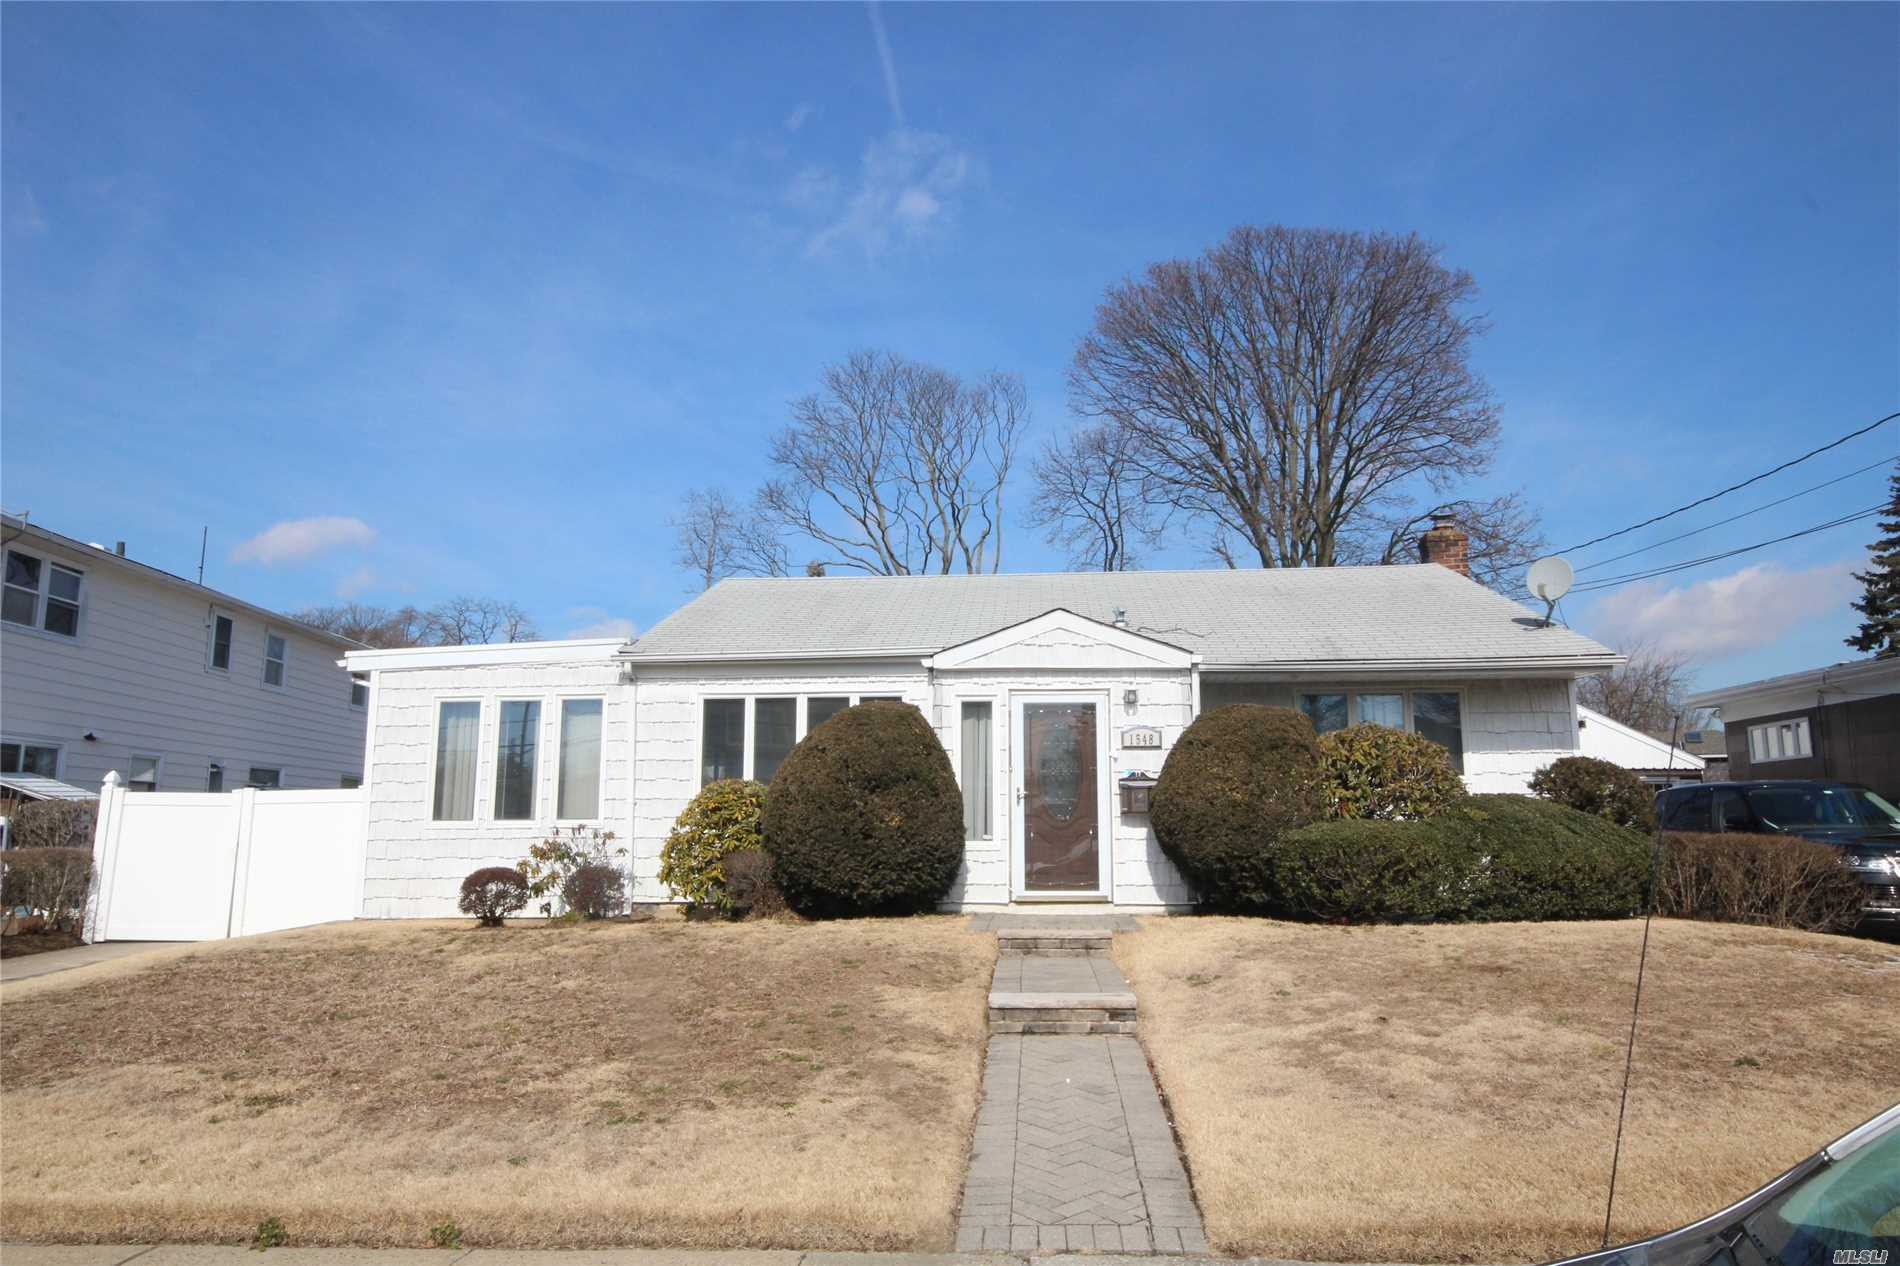 Detached Single Family Ranch Styled Home With Private Driveway, Detached One Car Garage, And Fully Finished Basement. The Property Features A Living Room/Dining Room Combination, Eat In Kitchen, Three Bedrooms, And Two Full Bathrooms.